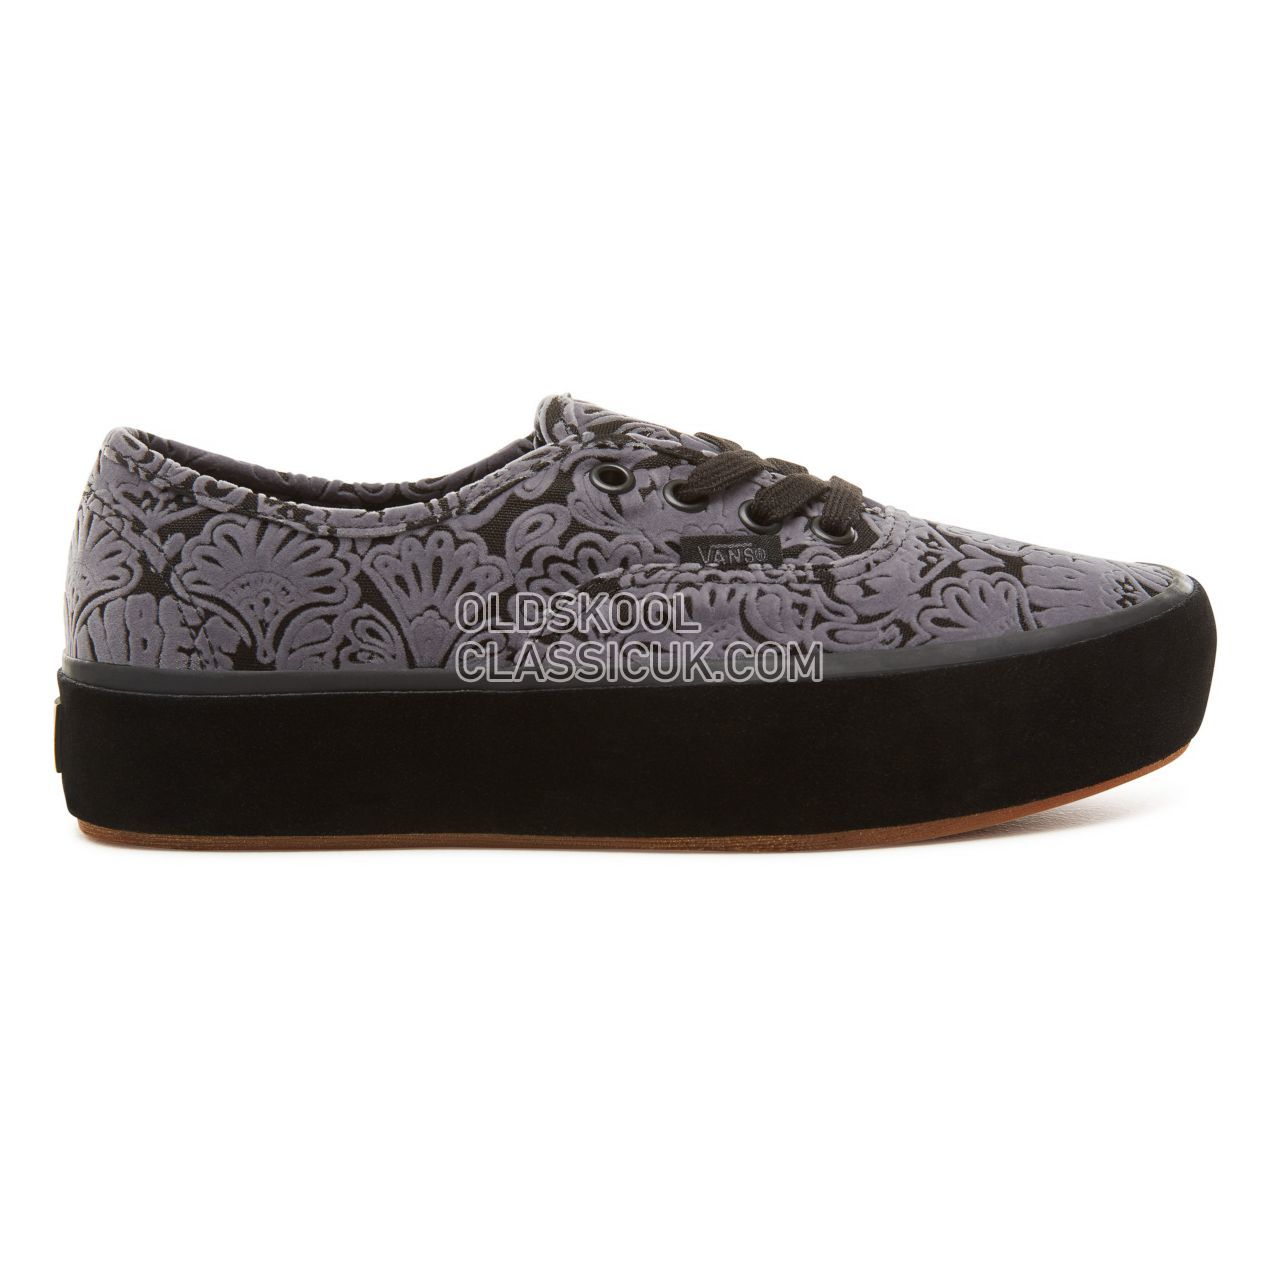 Vans Sidewall Wrap Authentic Platform 2.0 Sneakers Womens (Sidewall Wrap) Suede/Black VA3AV8U6N Shoes